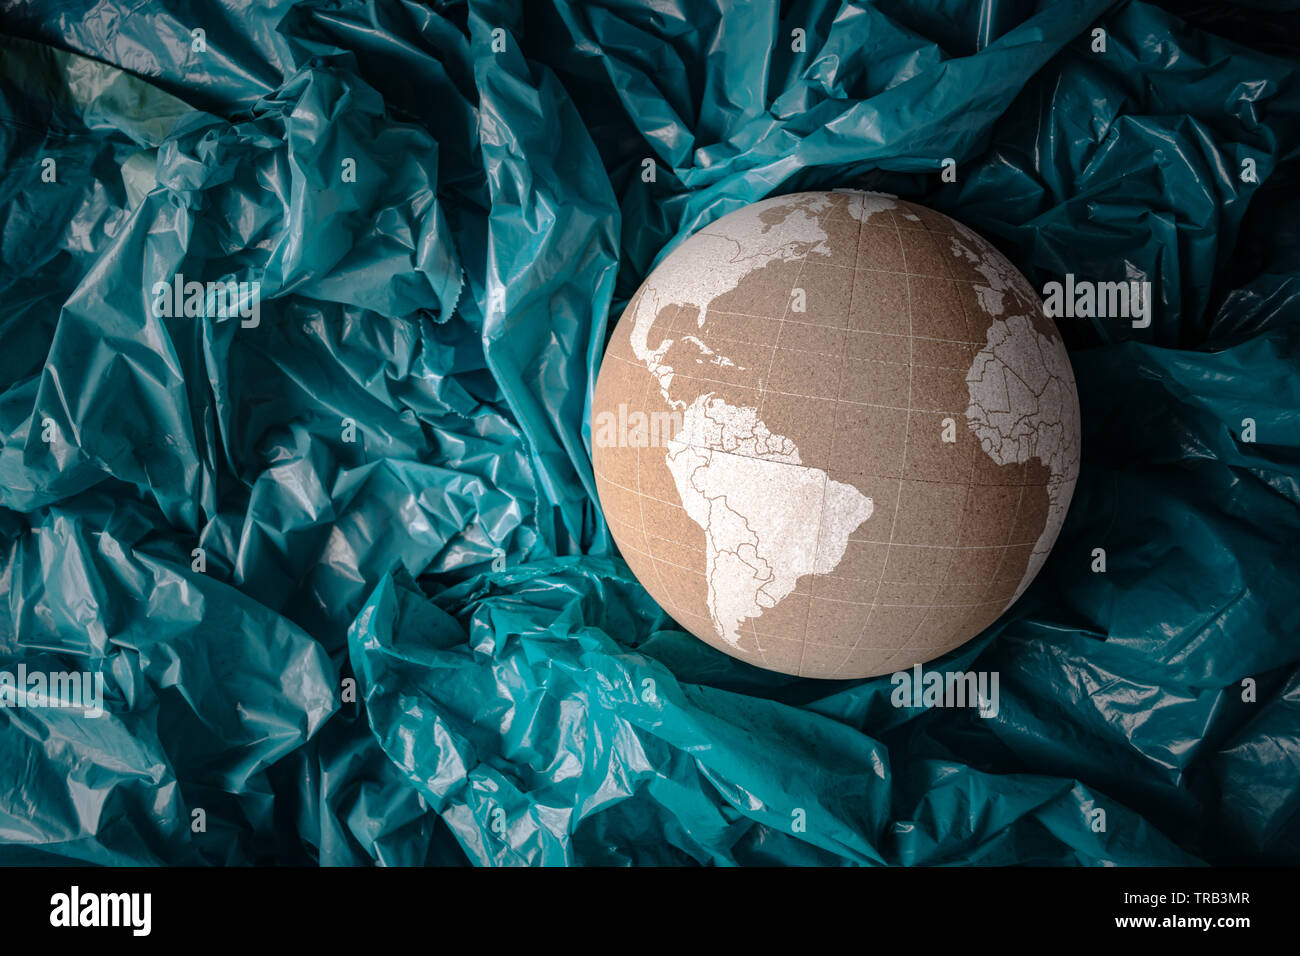 Cork globe sinking in blue plastic ocean. Creative concept of ocean pollution with plastic. Copy space, flat lay, horizontal. - Stock Image